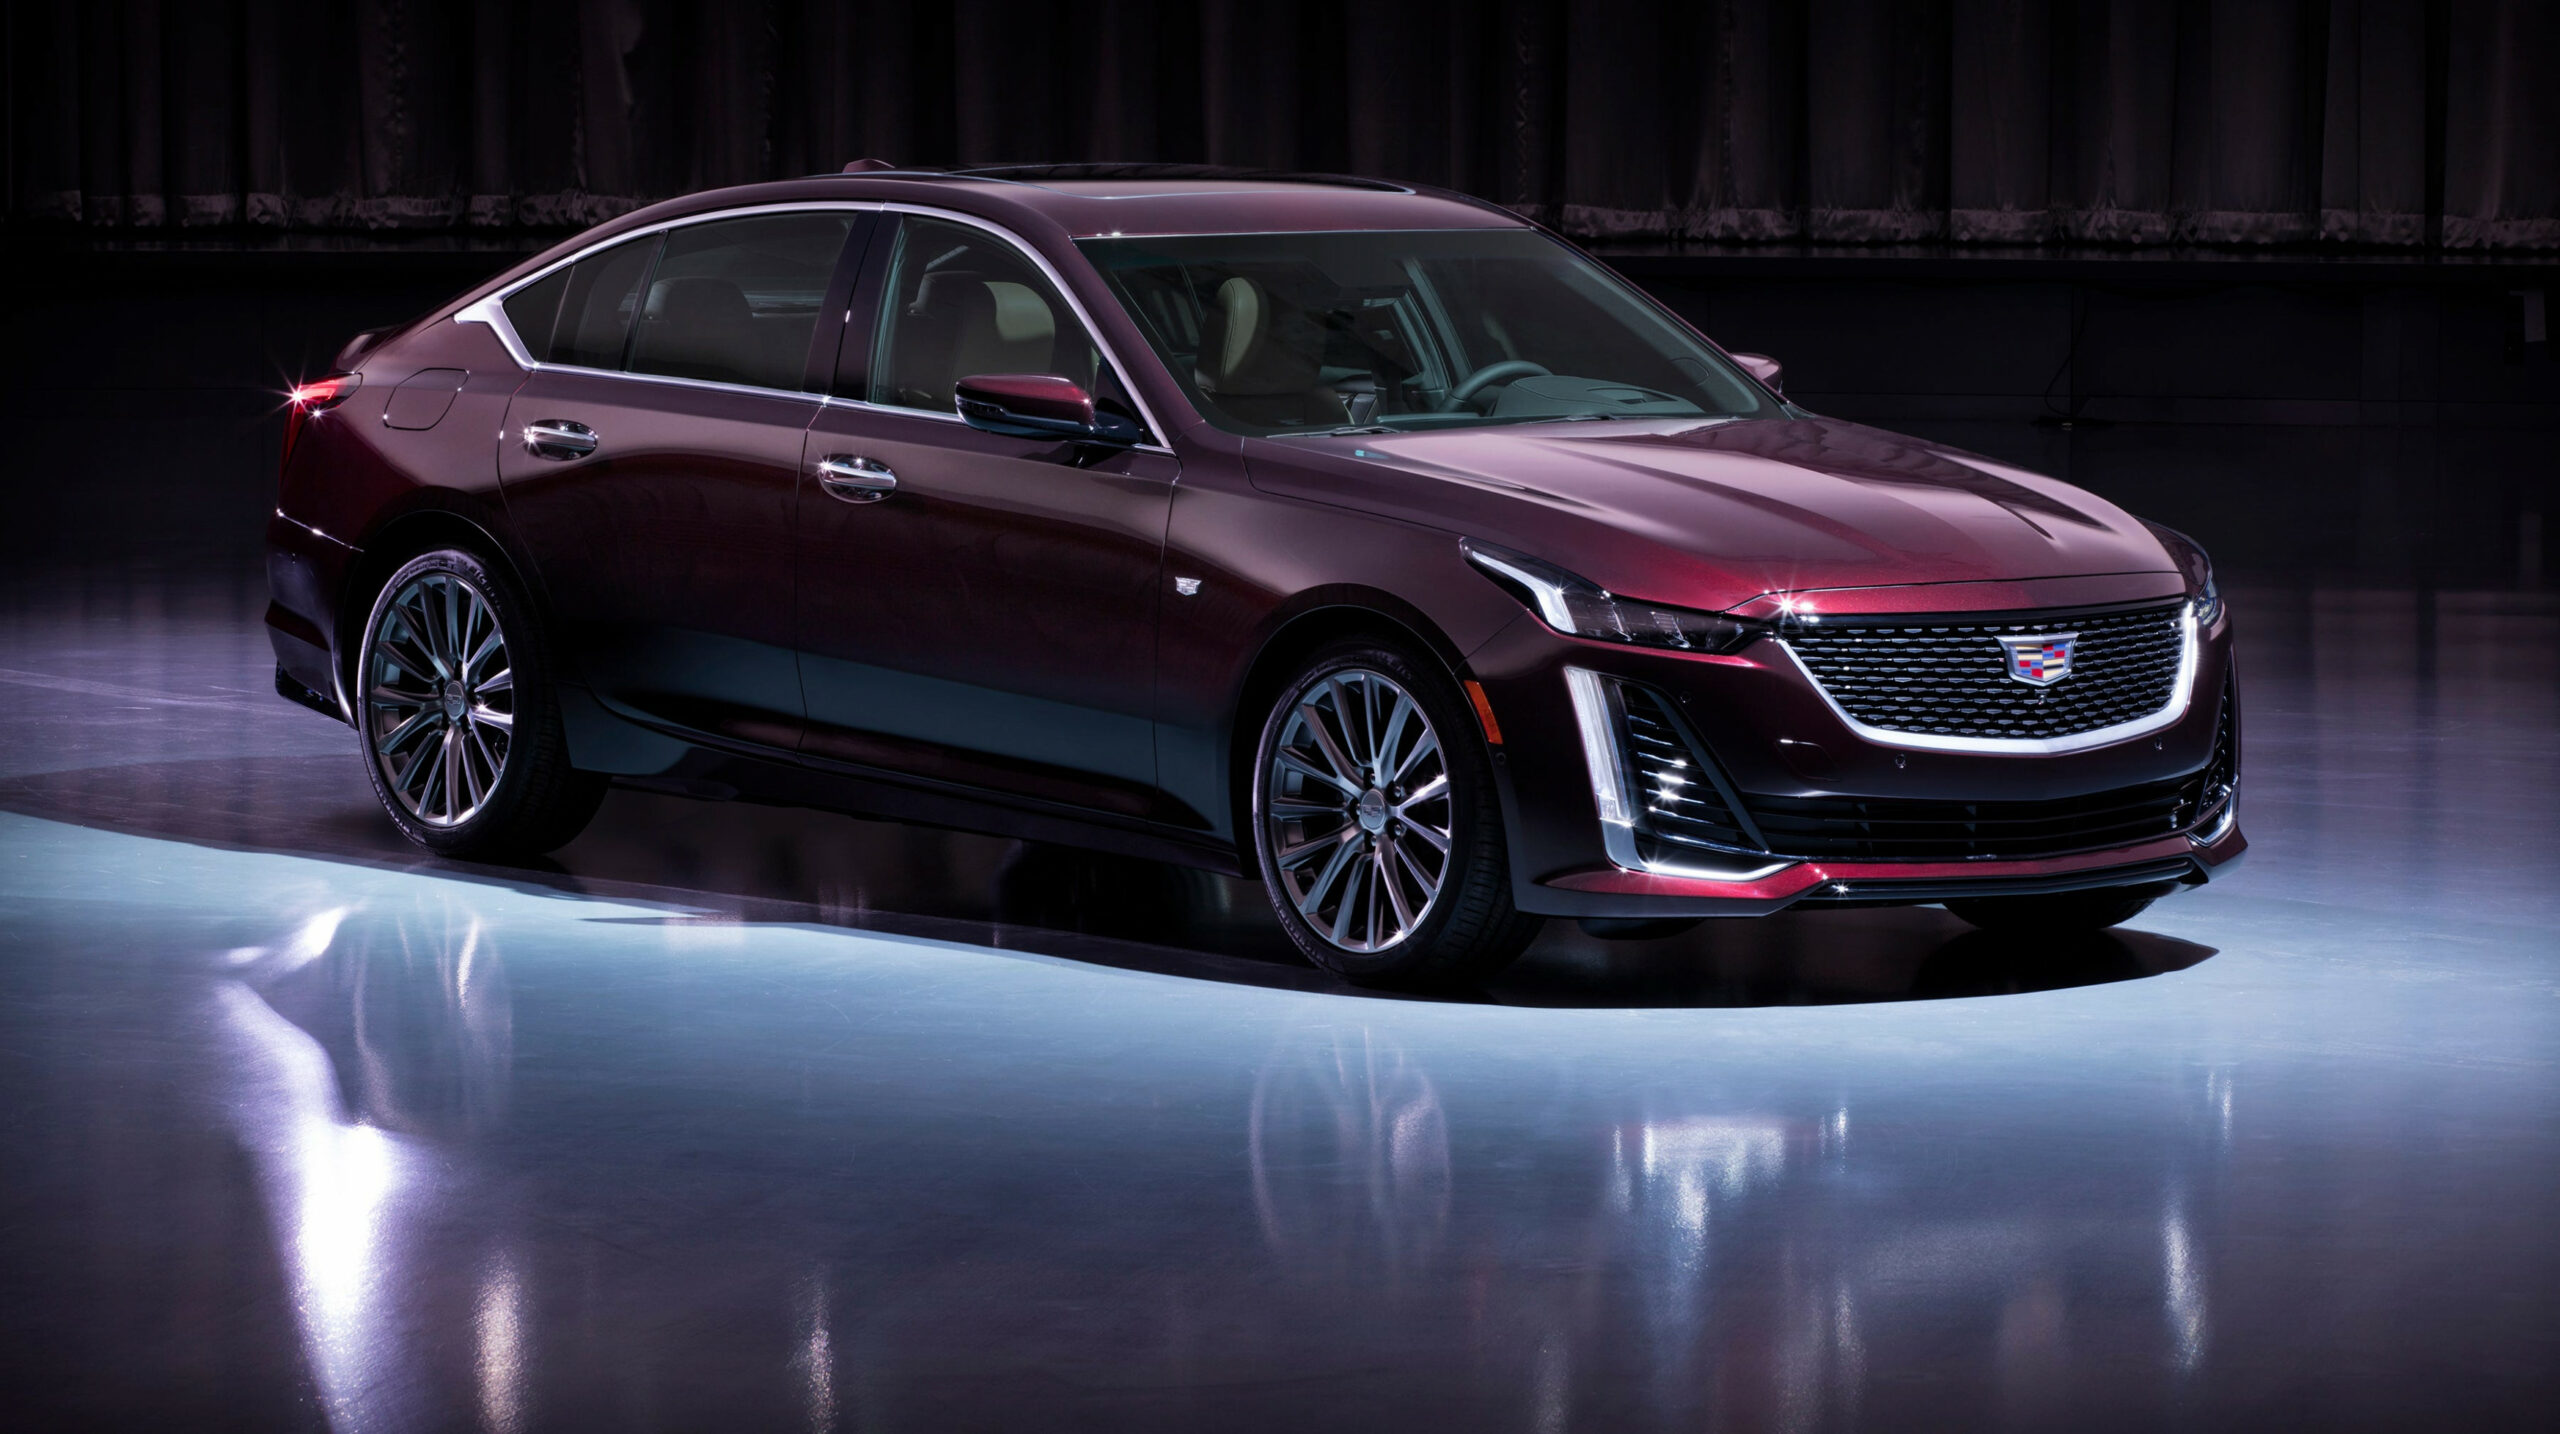 12 Cadillac CT12 Luxury sedan priced far below CTS predecessor